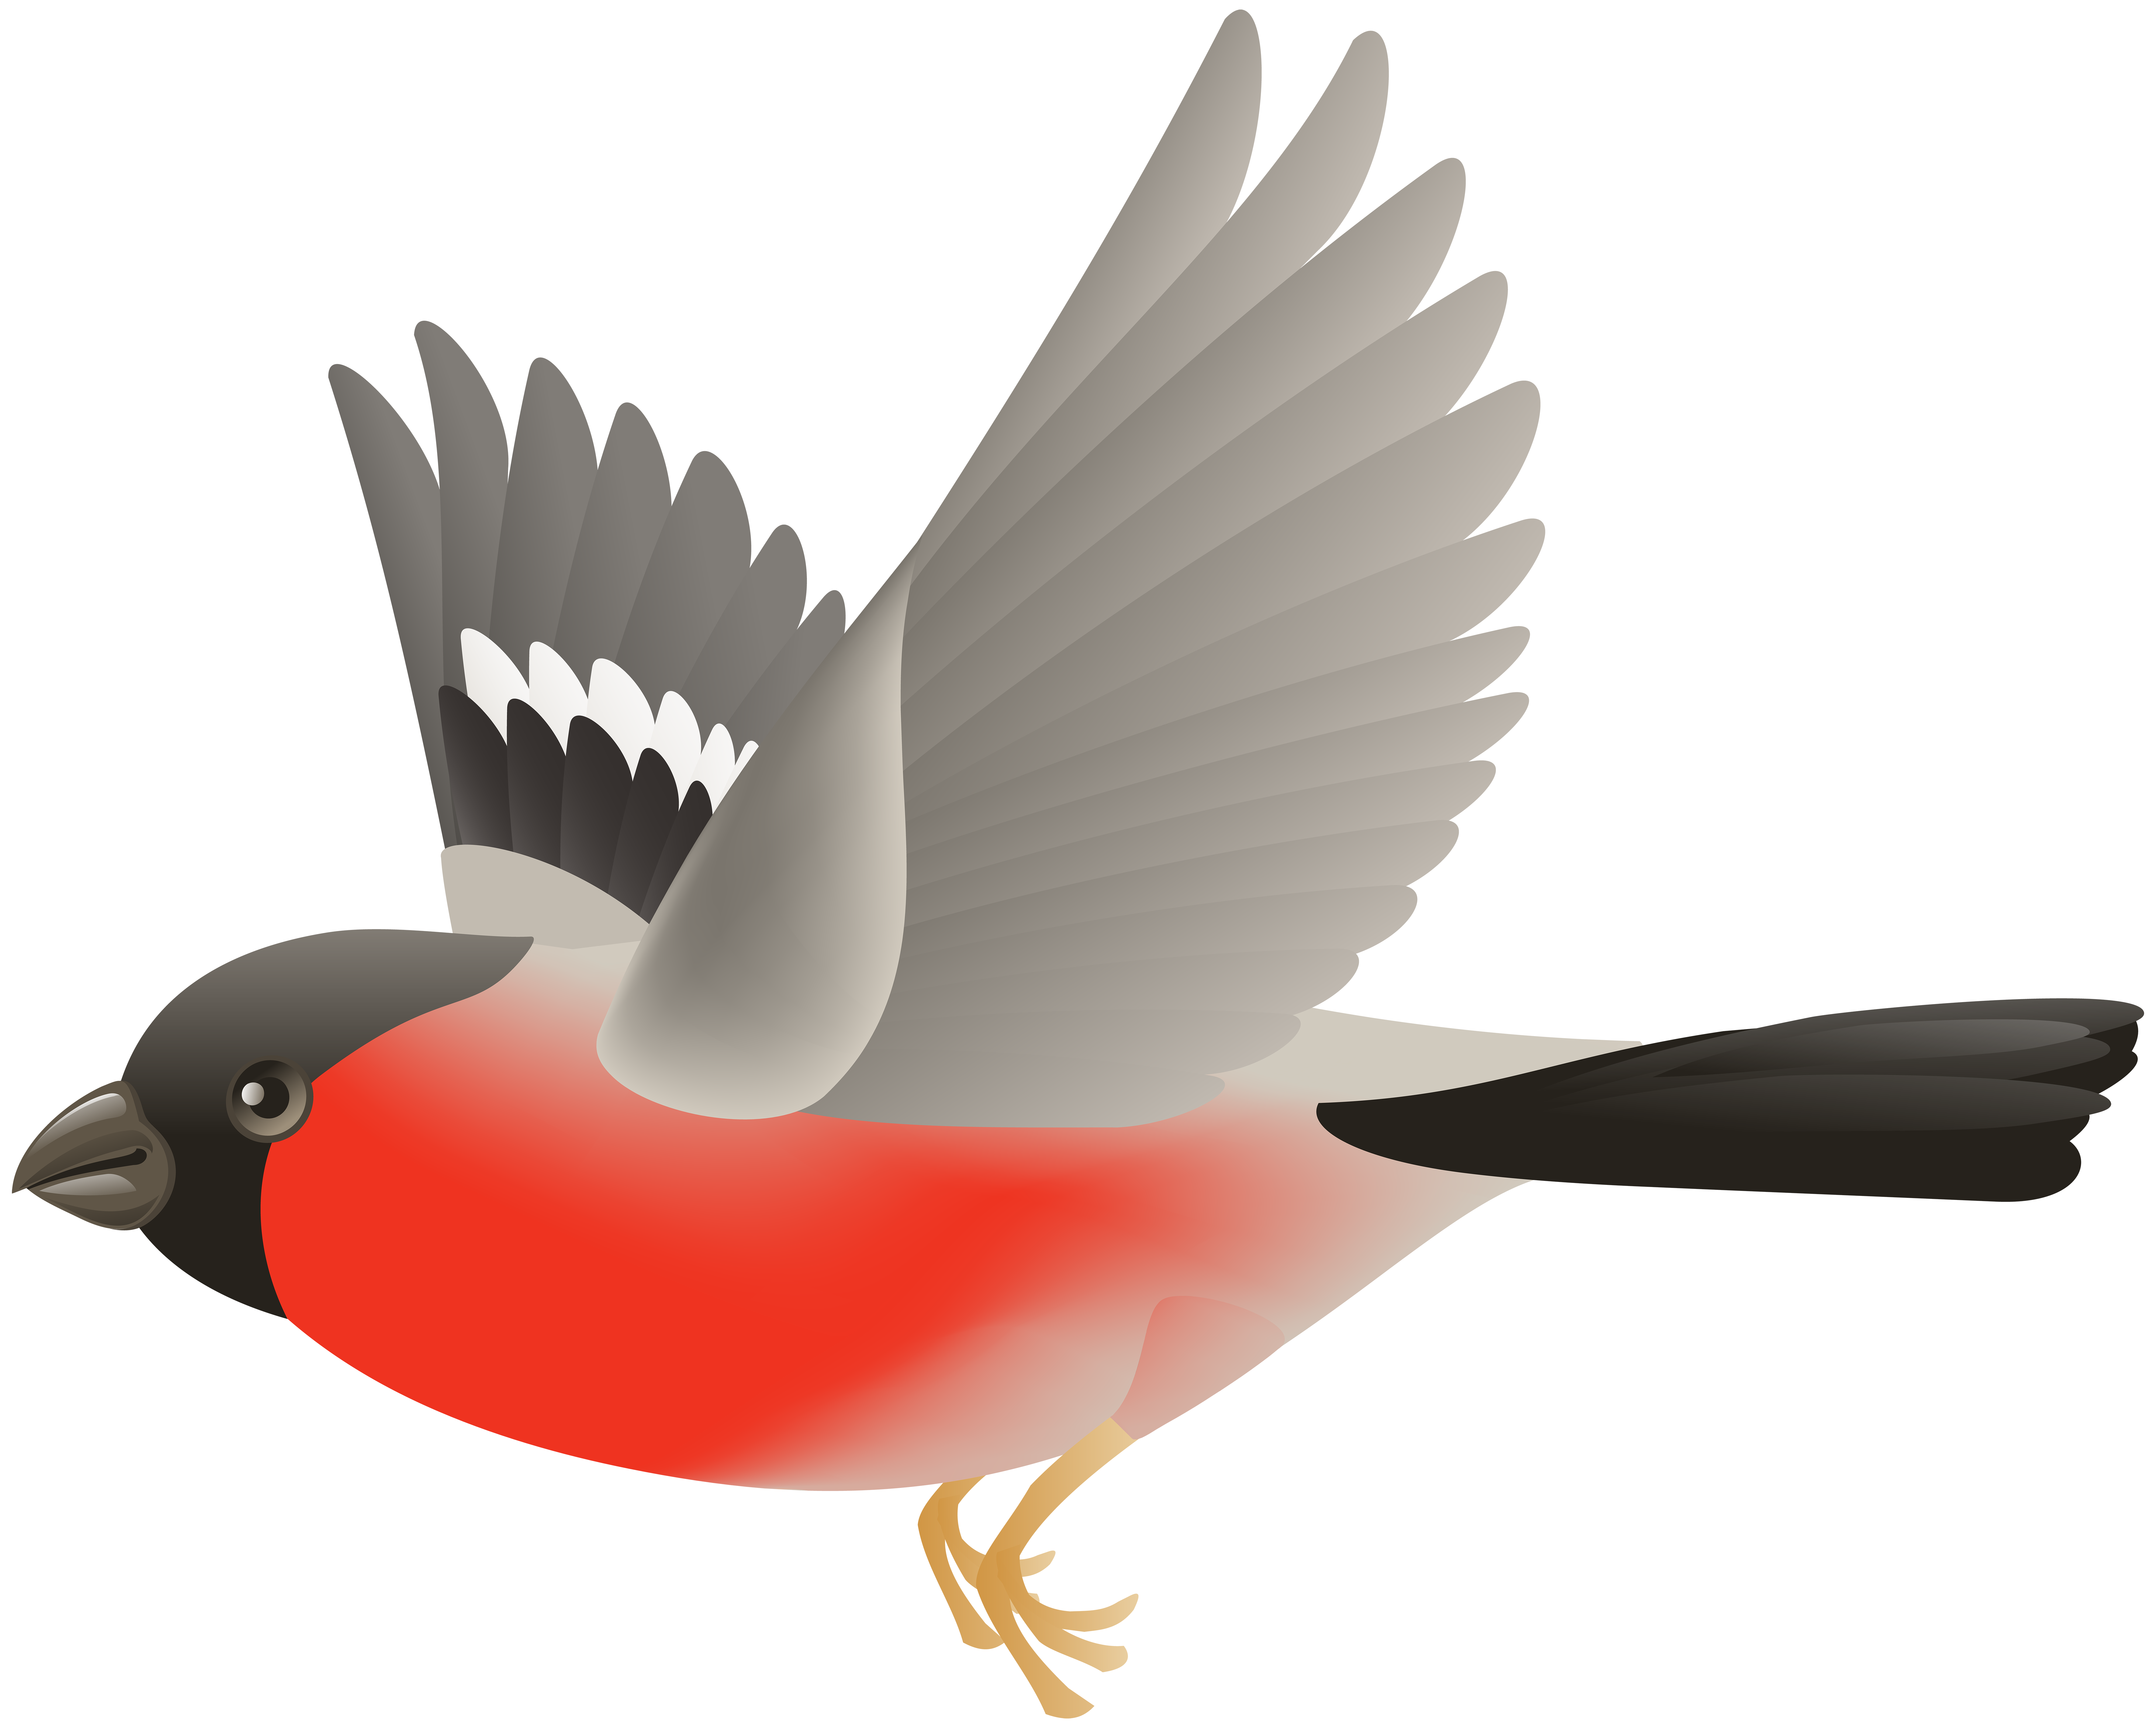 bird clipart flying cage cliparts getdrawings